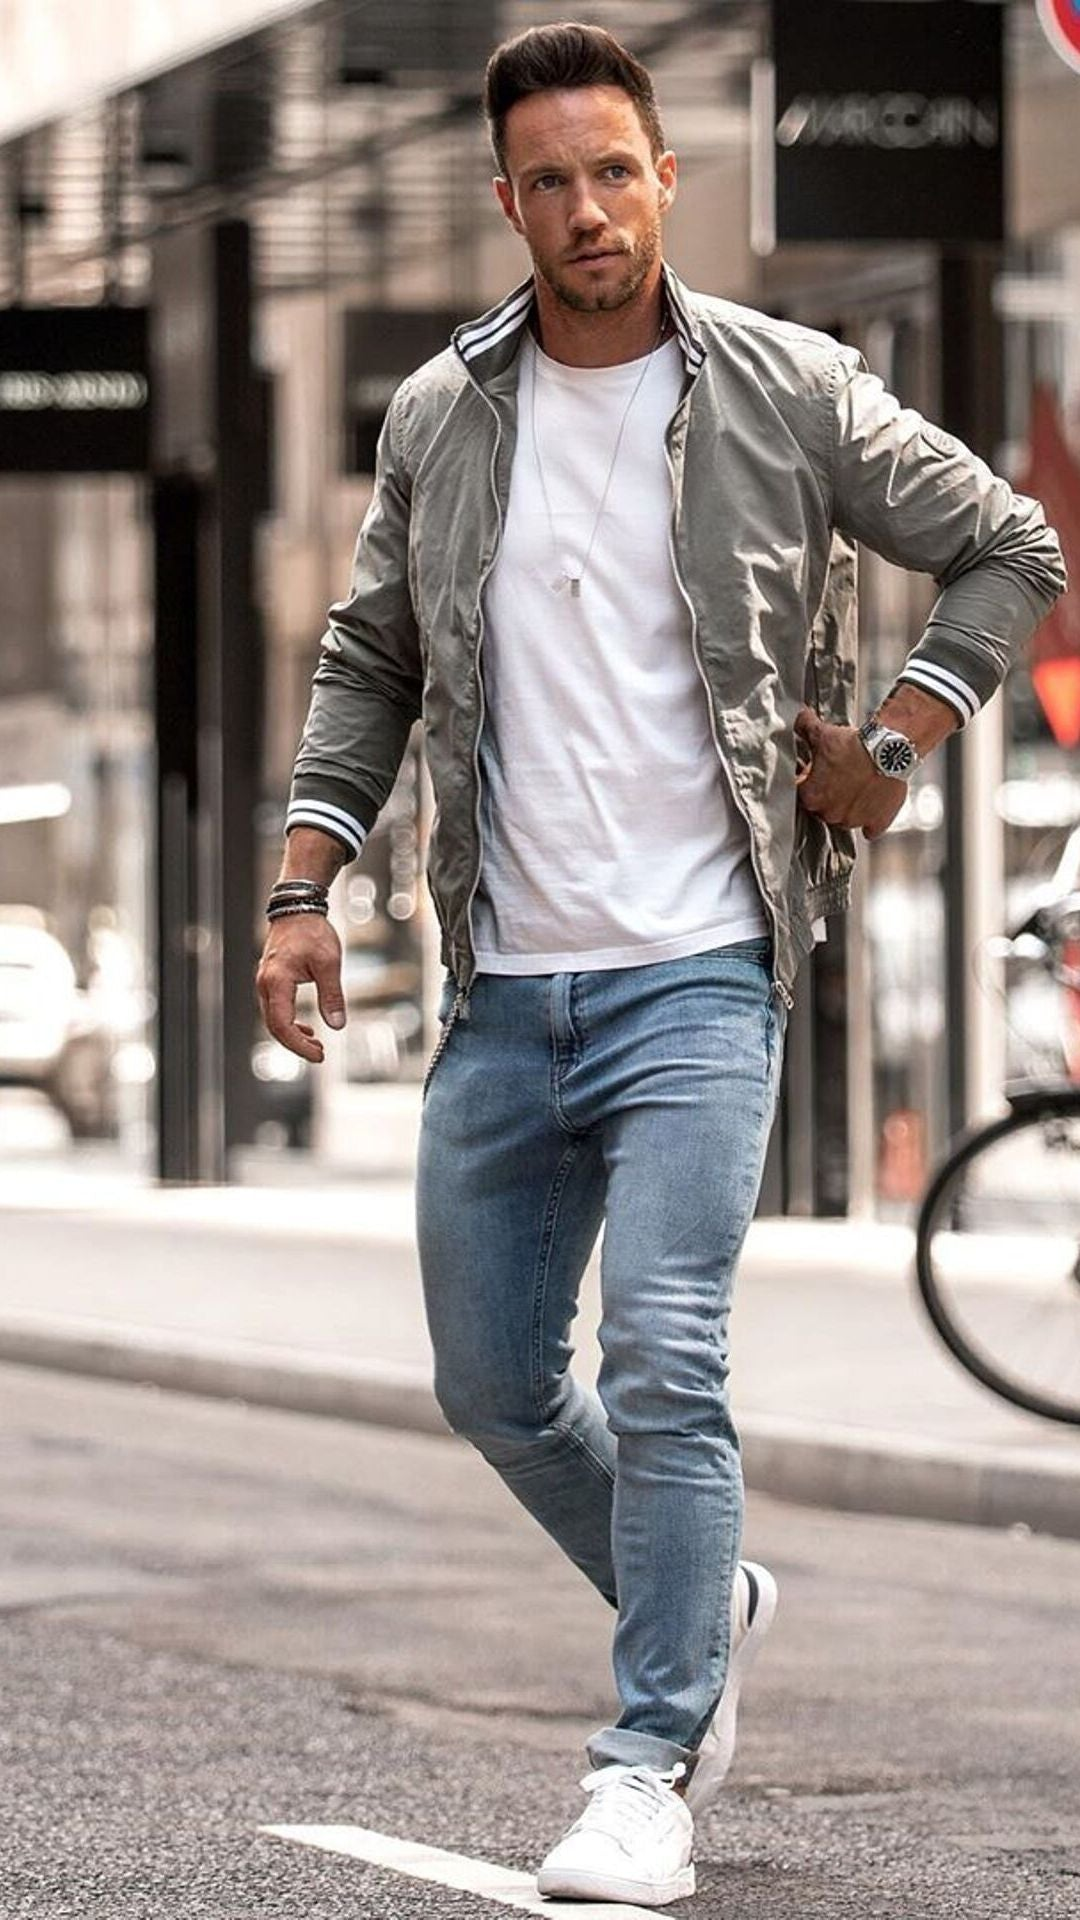 5 Cool & Casual Outfits For Men - LIFESTYLE BY PS